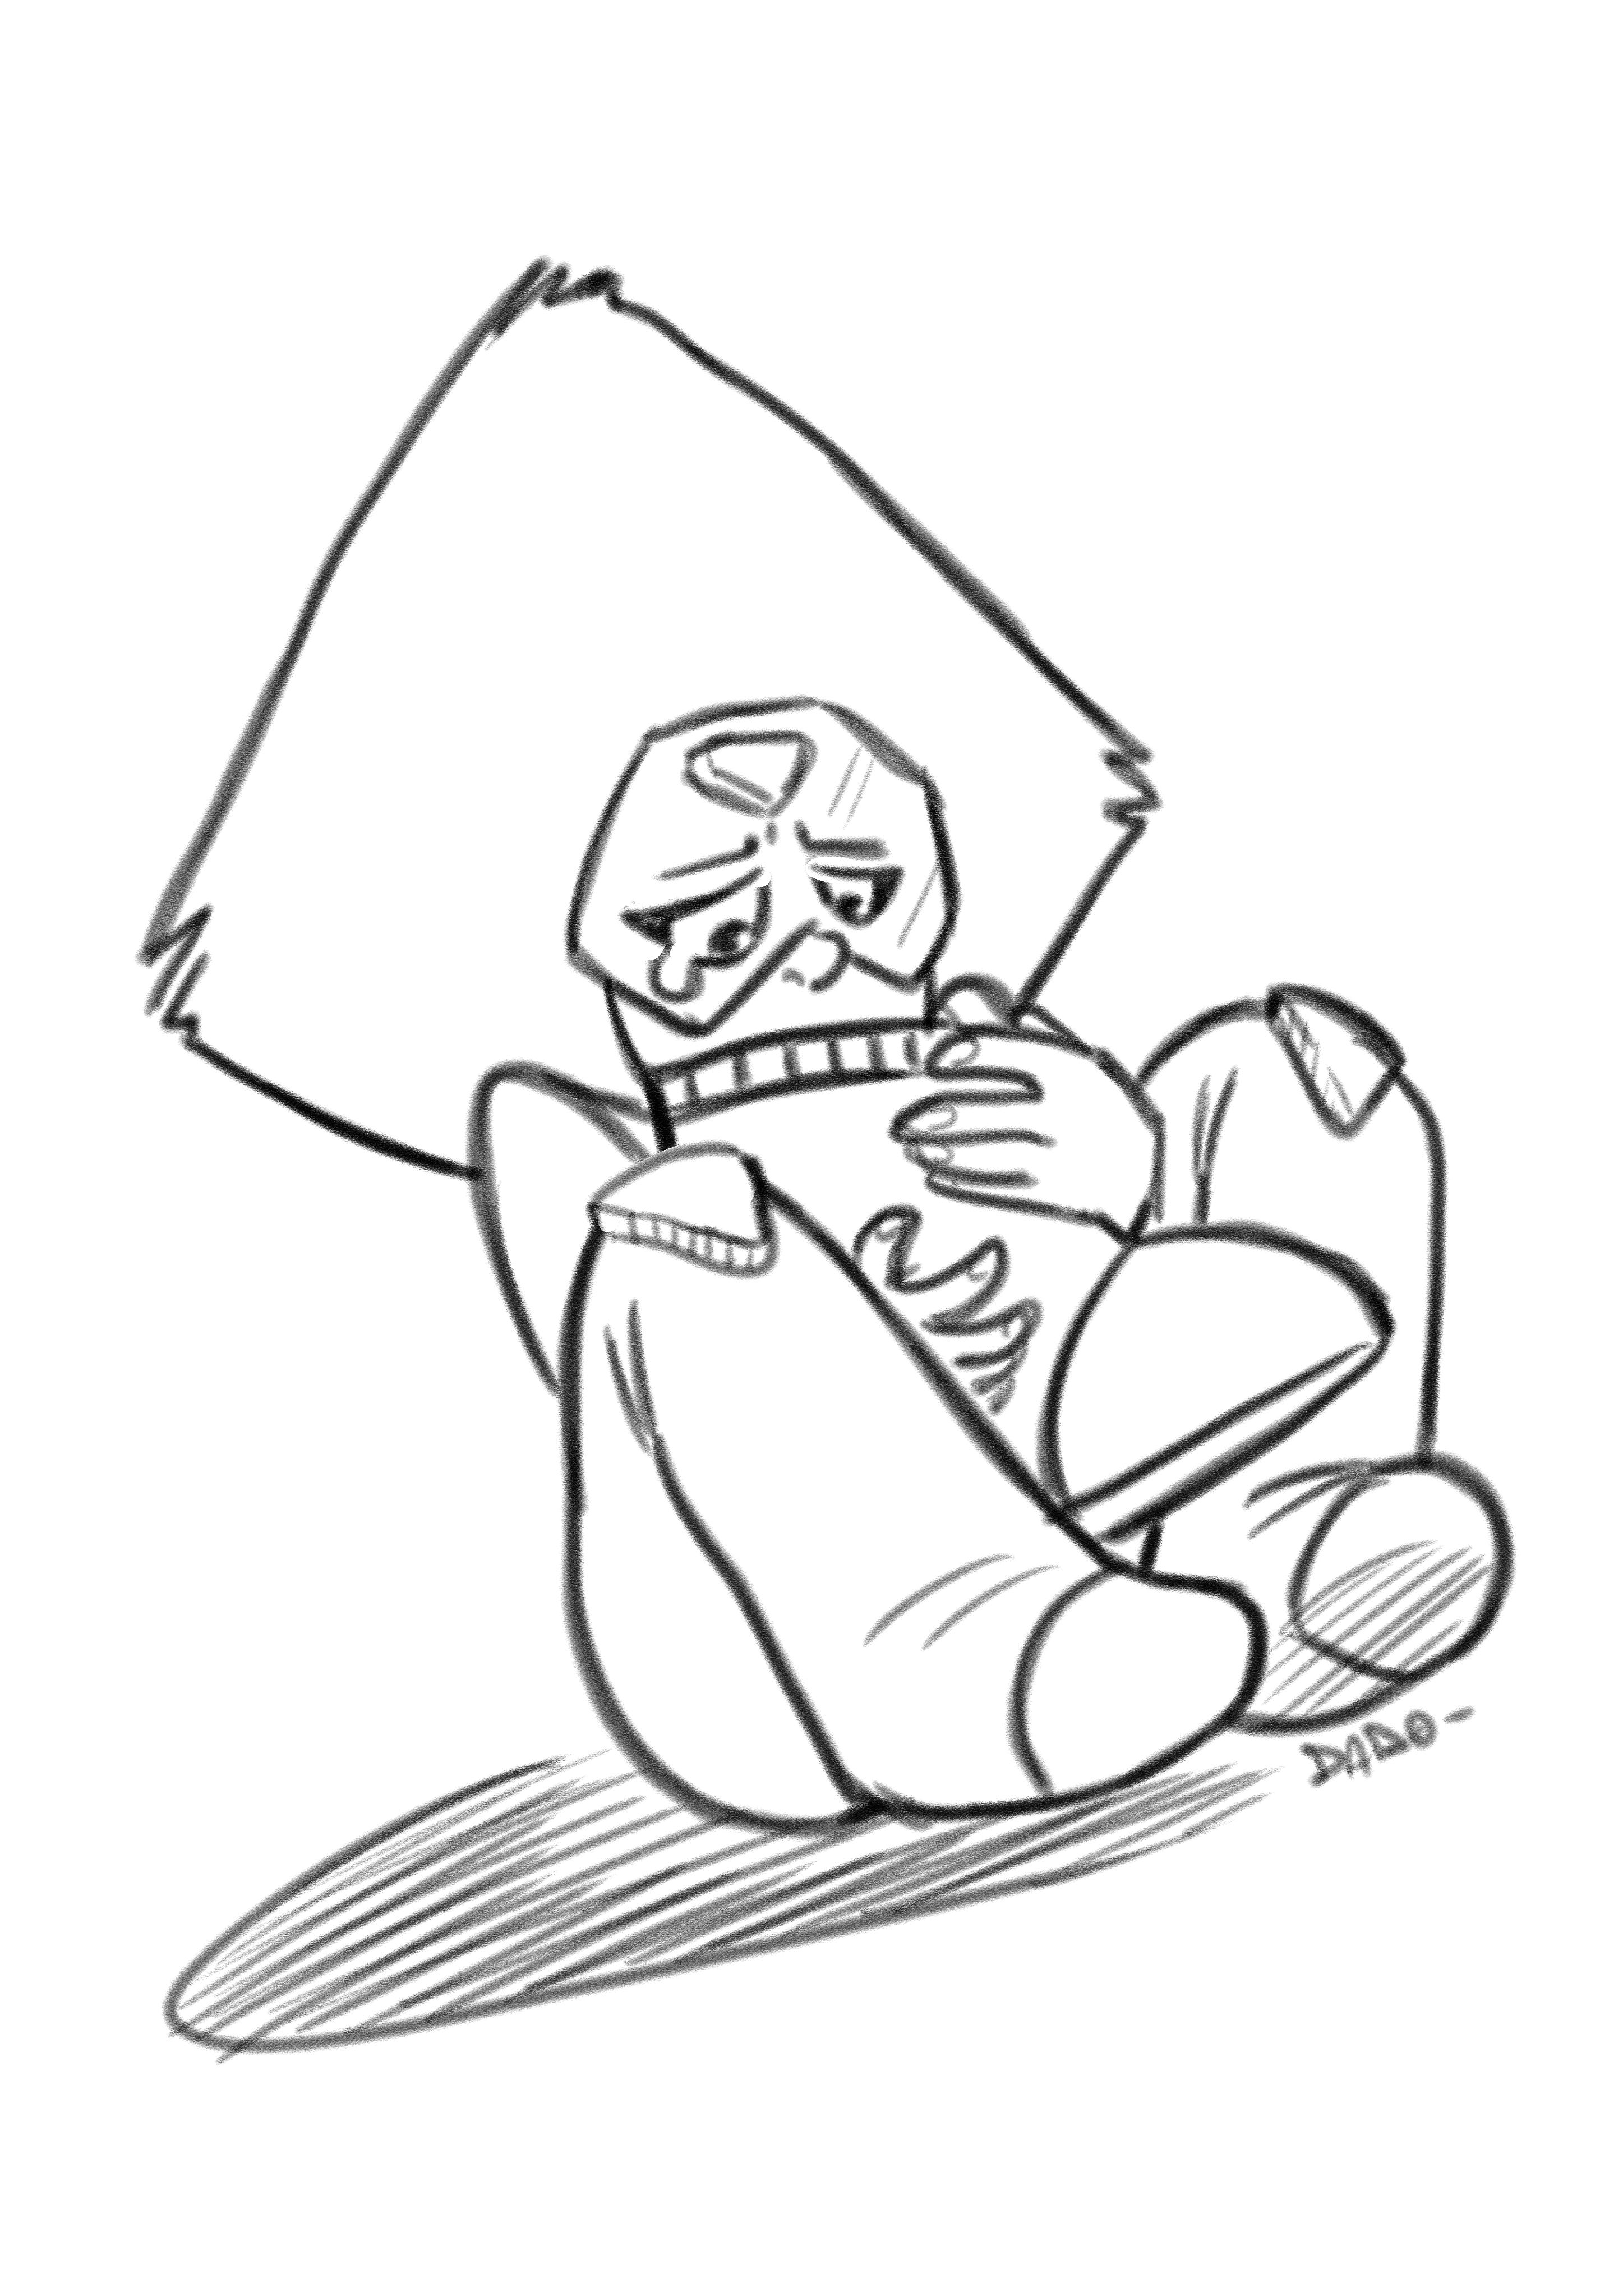 Poor Tiny Cute Peridot What They Ve Done To You Peridot Stevenuniverse Su Cute Shor Candy Coloring Pages Abstract Coloring Pages Unique Coloring Pages